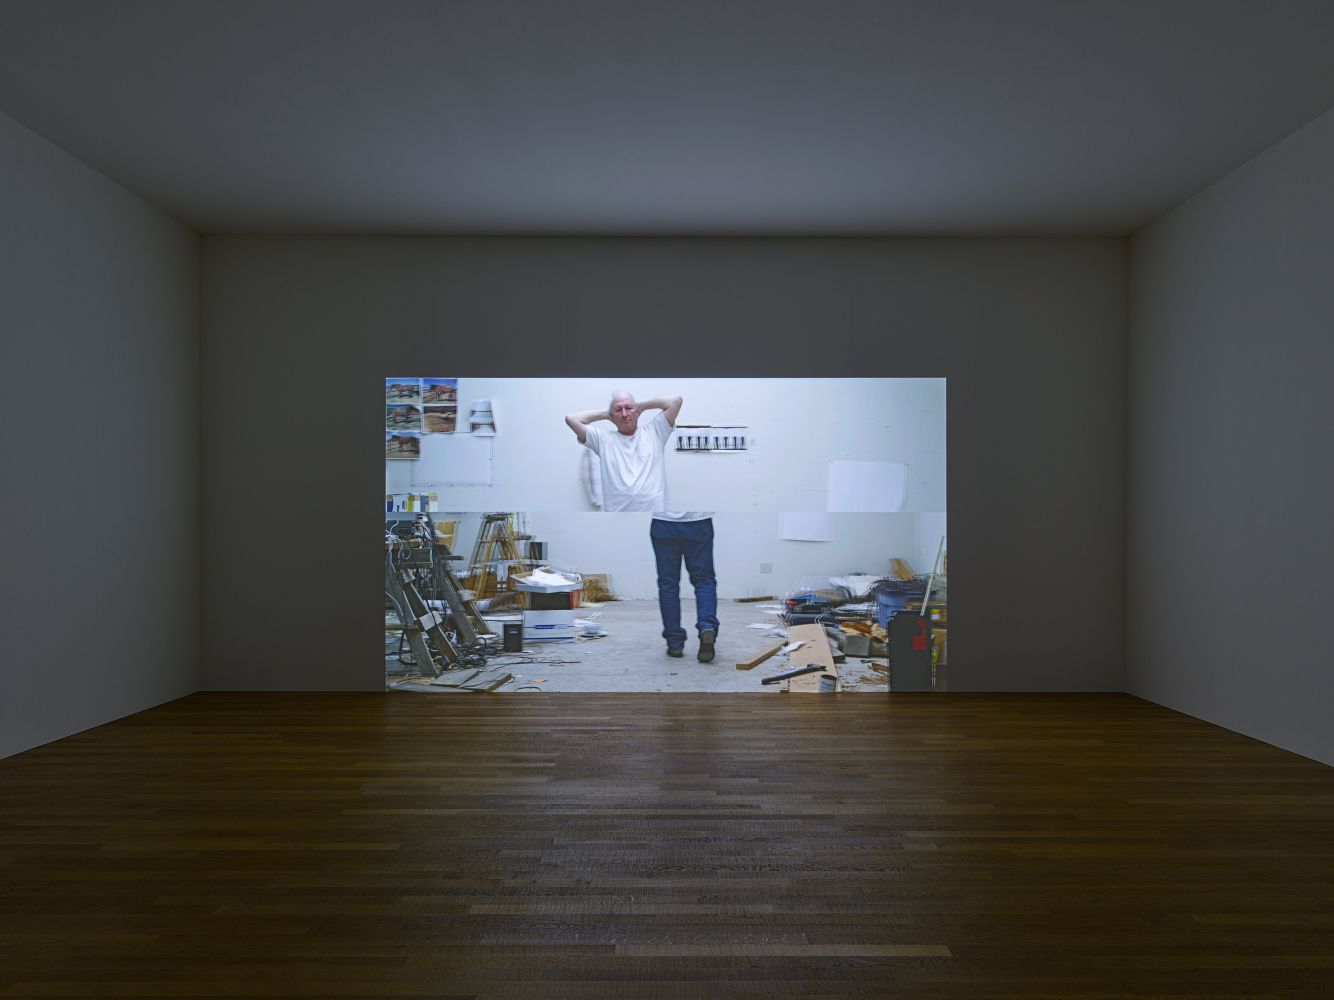 installation view of a darkened gallery with a projected image of a man walking with his hands behind his head in a contrapposto pose